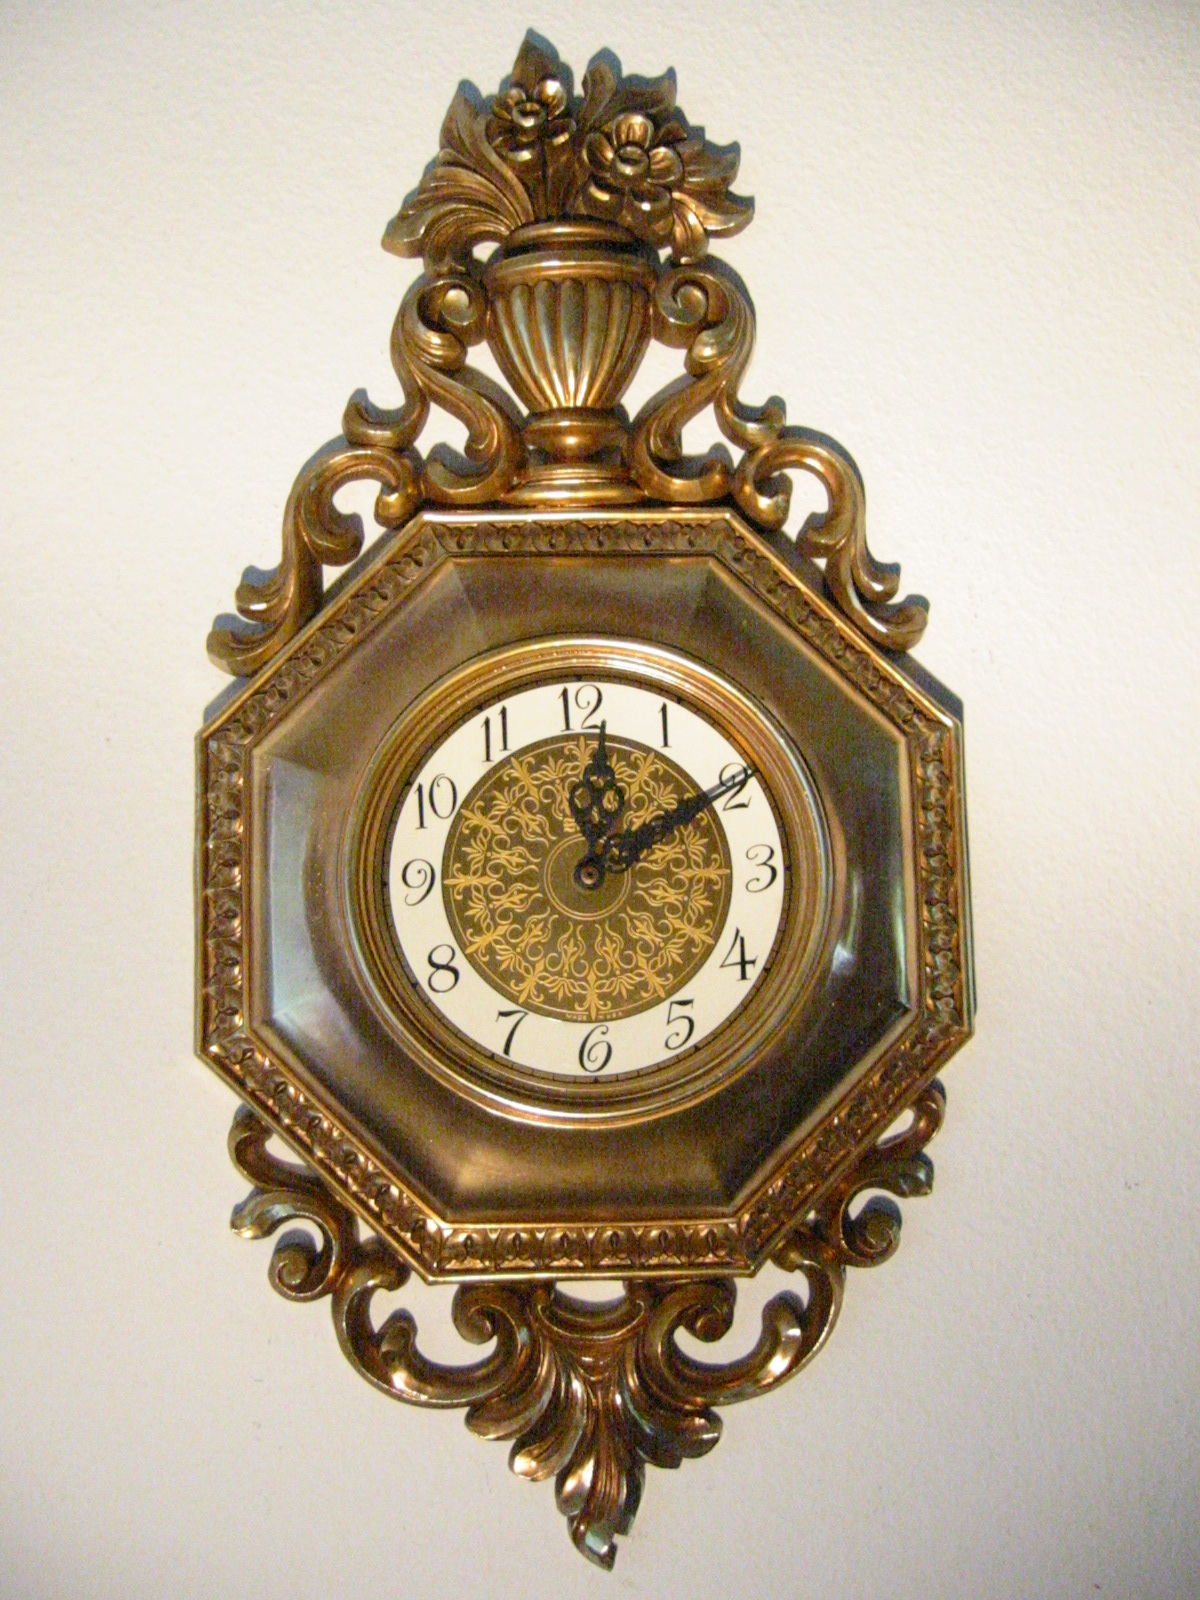 syrocco rococo style golden wall clock for sale antiques